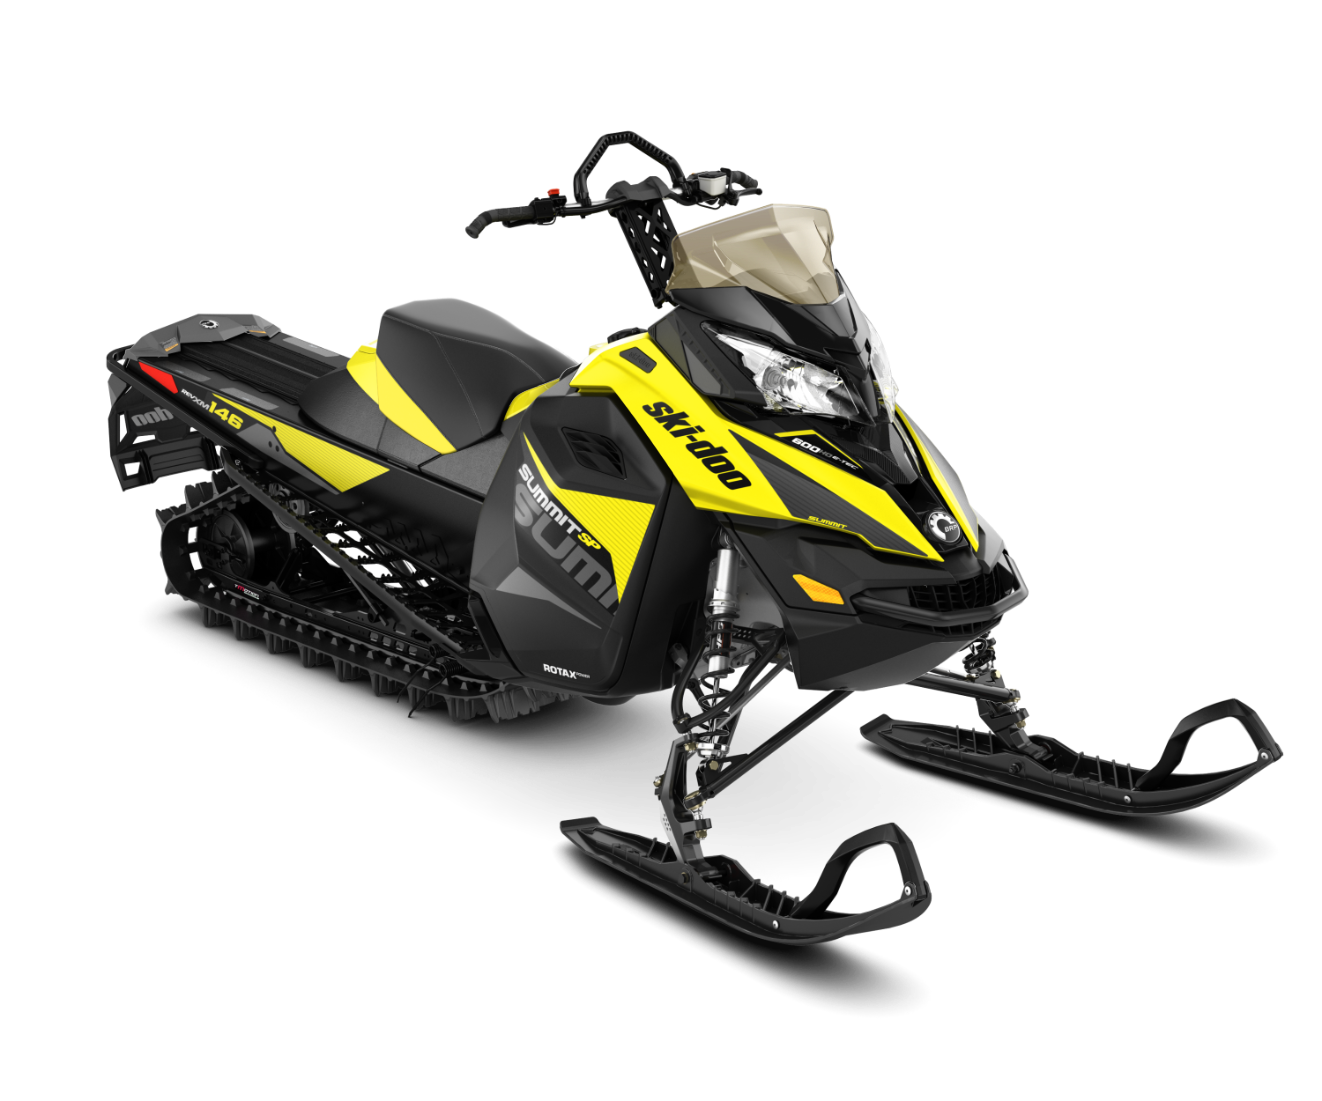 2018 Ski-Doo Summit SP 146 600 H.O. E-TEC in Eugene, Oregon